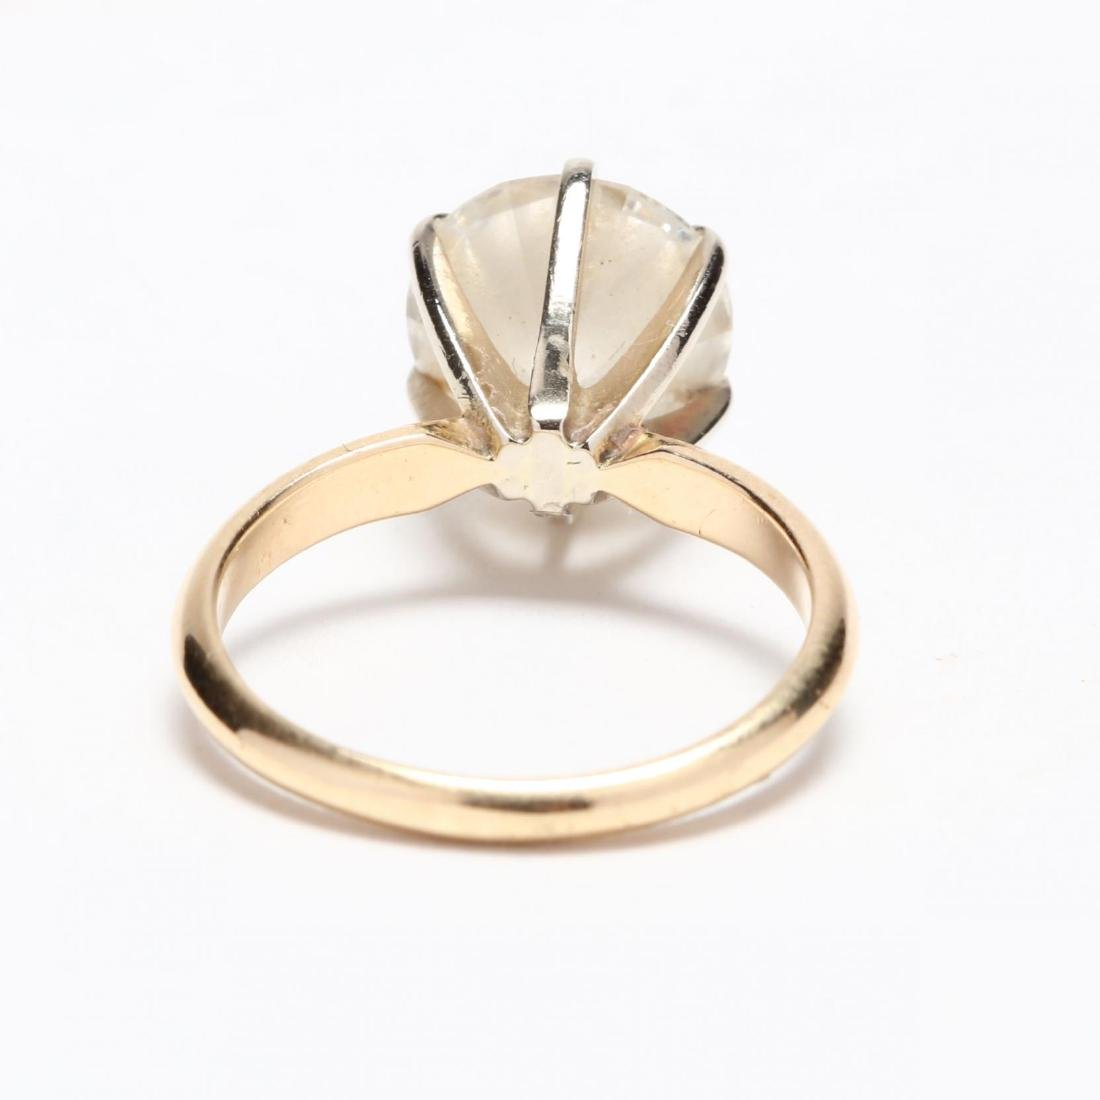 Unmounted Round Brilliant Cut Diamond and 14KT Gold - 6